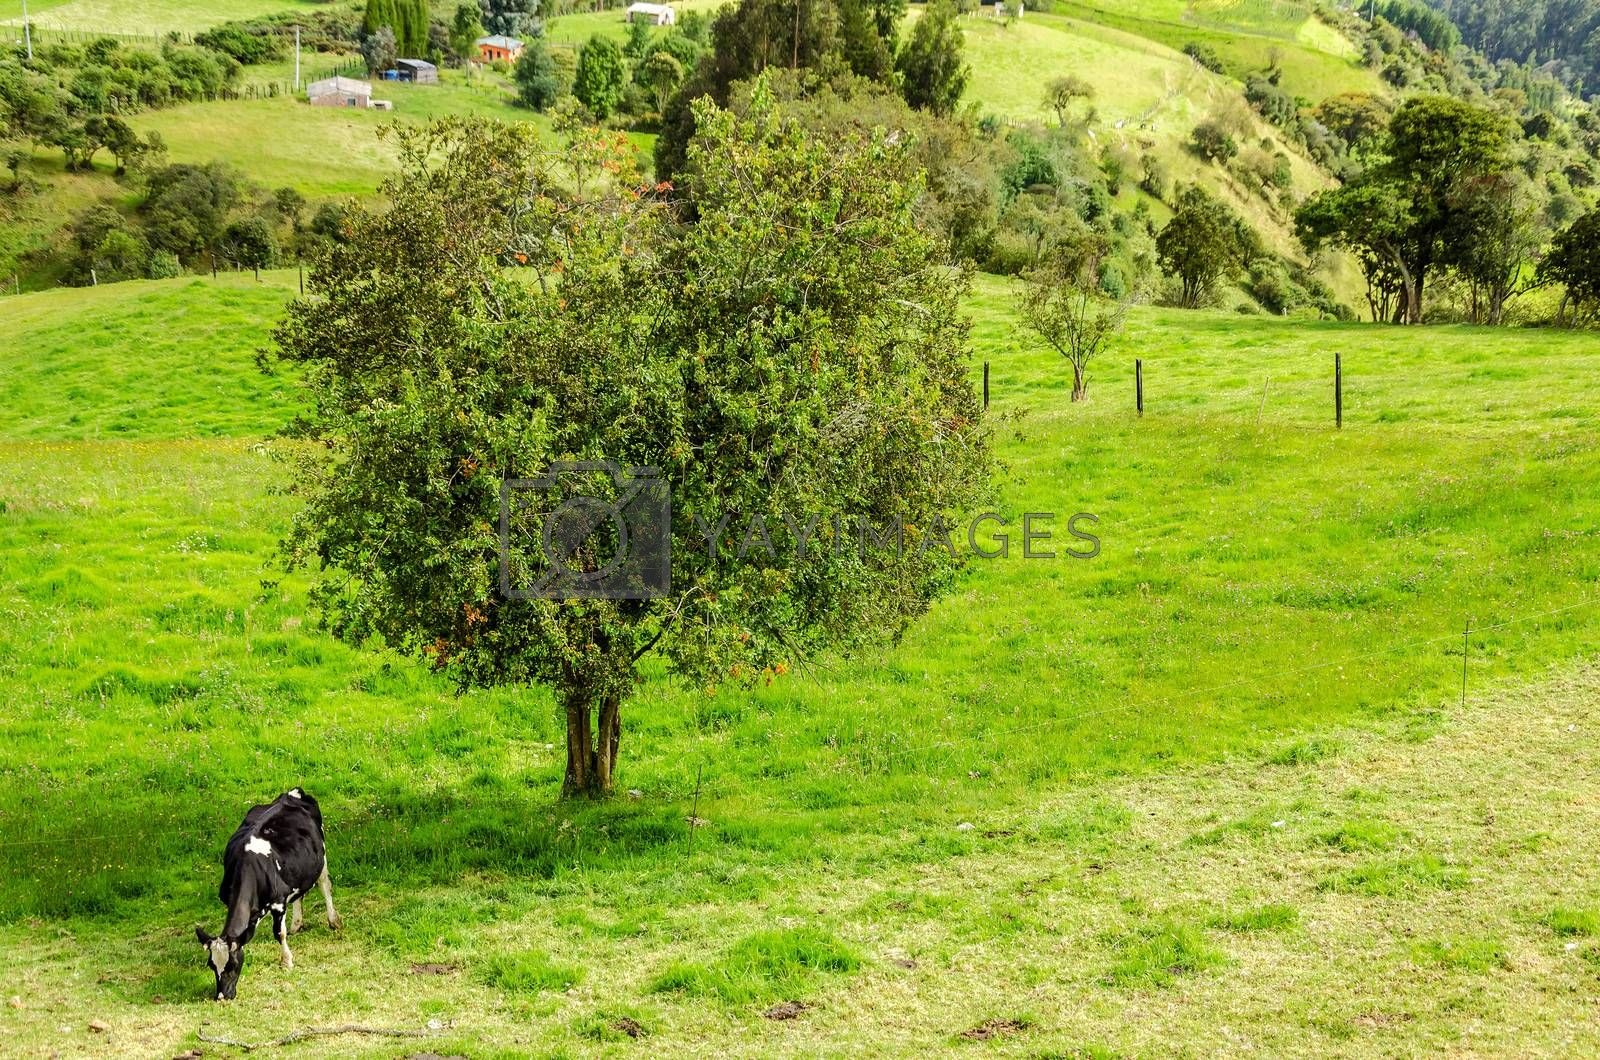 Royalty free image of Cow and Tree by jkraft5